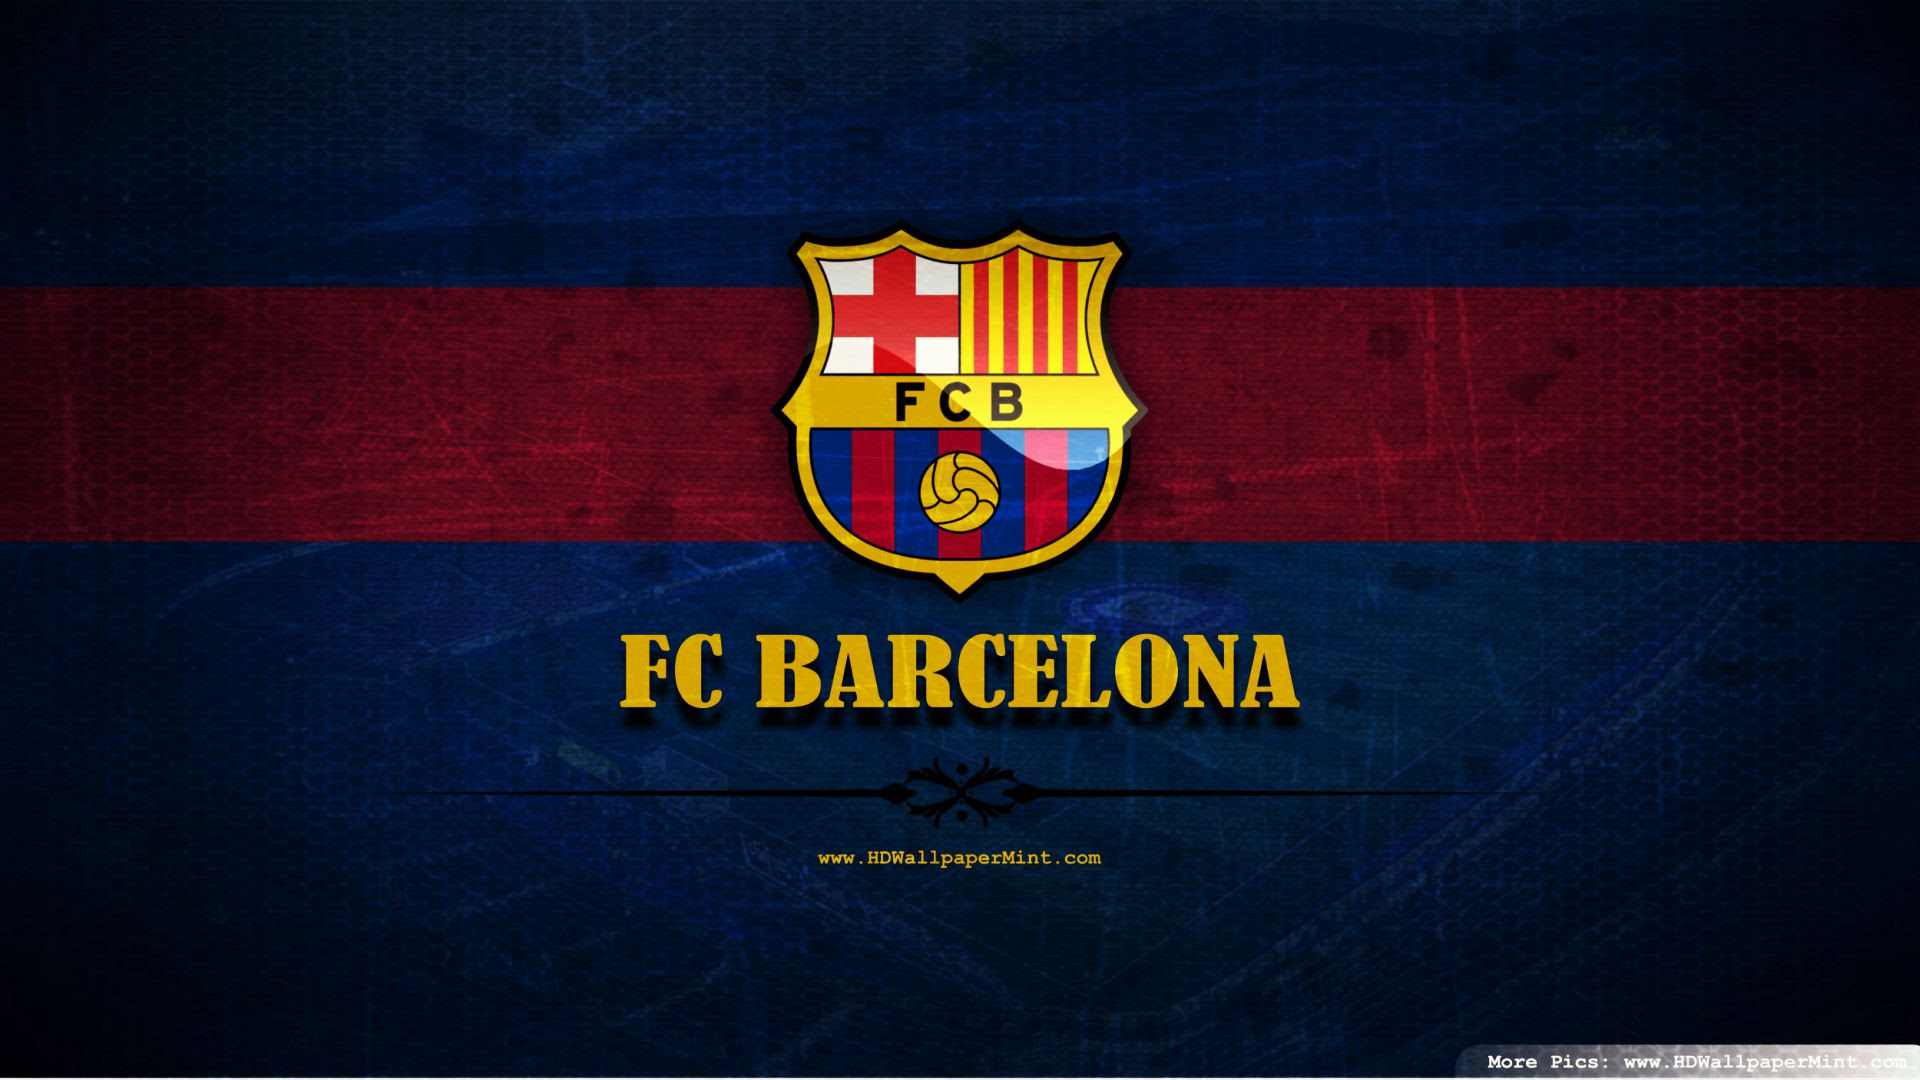 Fc Barcelona Wallpapers Hd Fc Barcelona Wallpapers Hd7 600x338